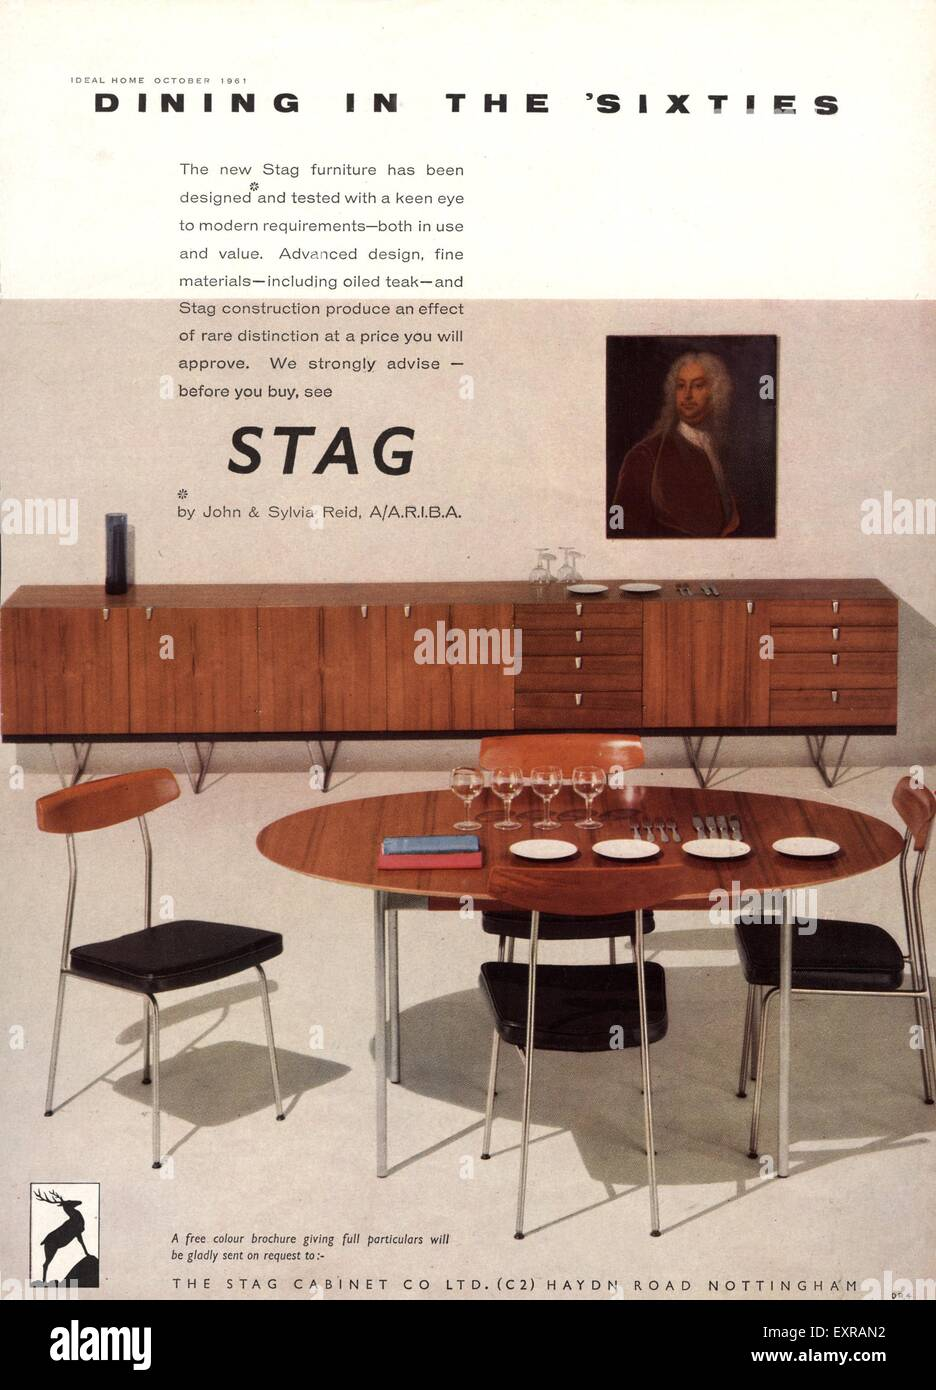 1960s UK Stag Furniture Magazine Advert   Stock Image